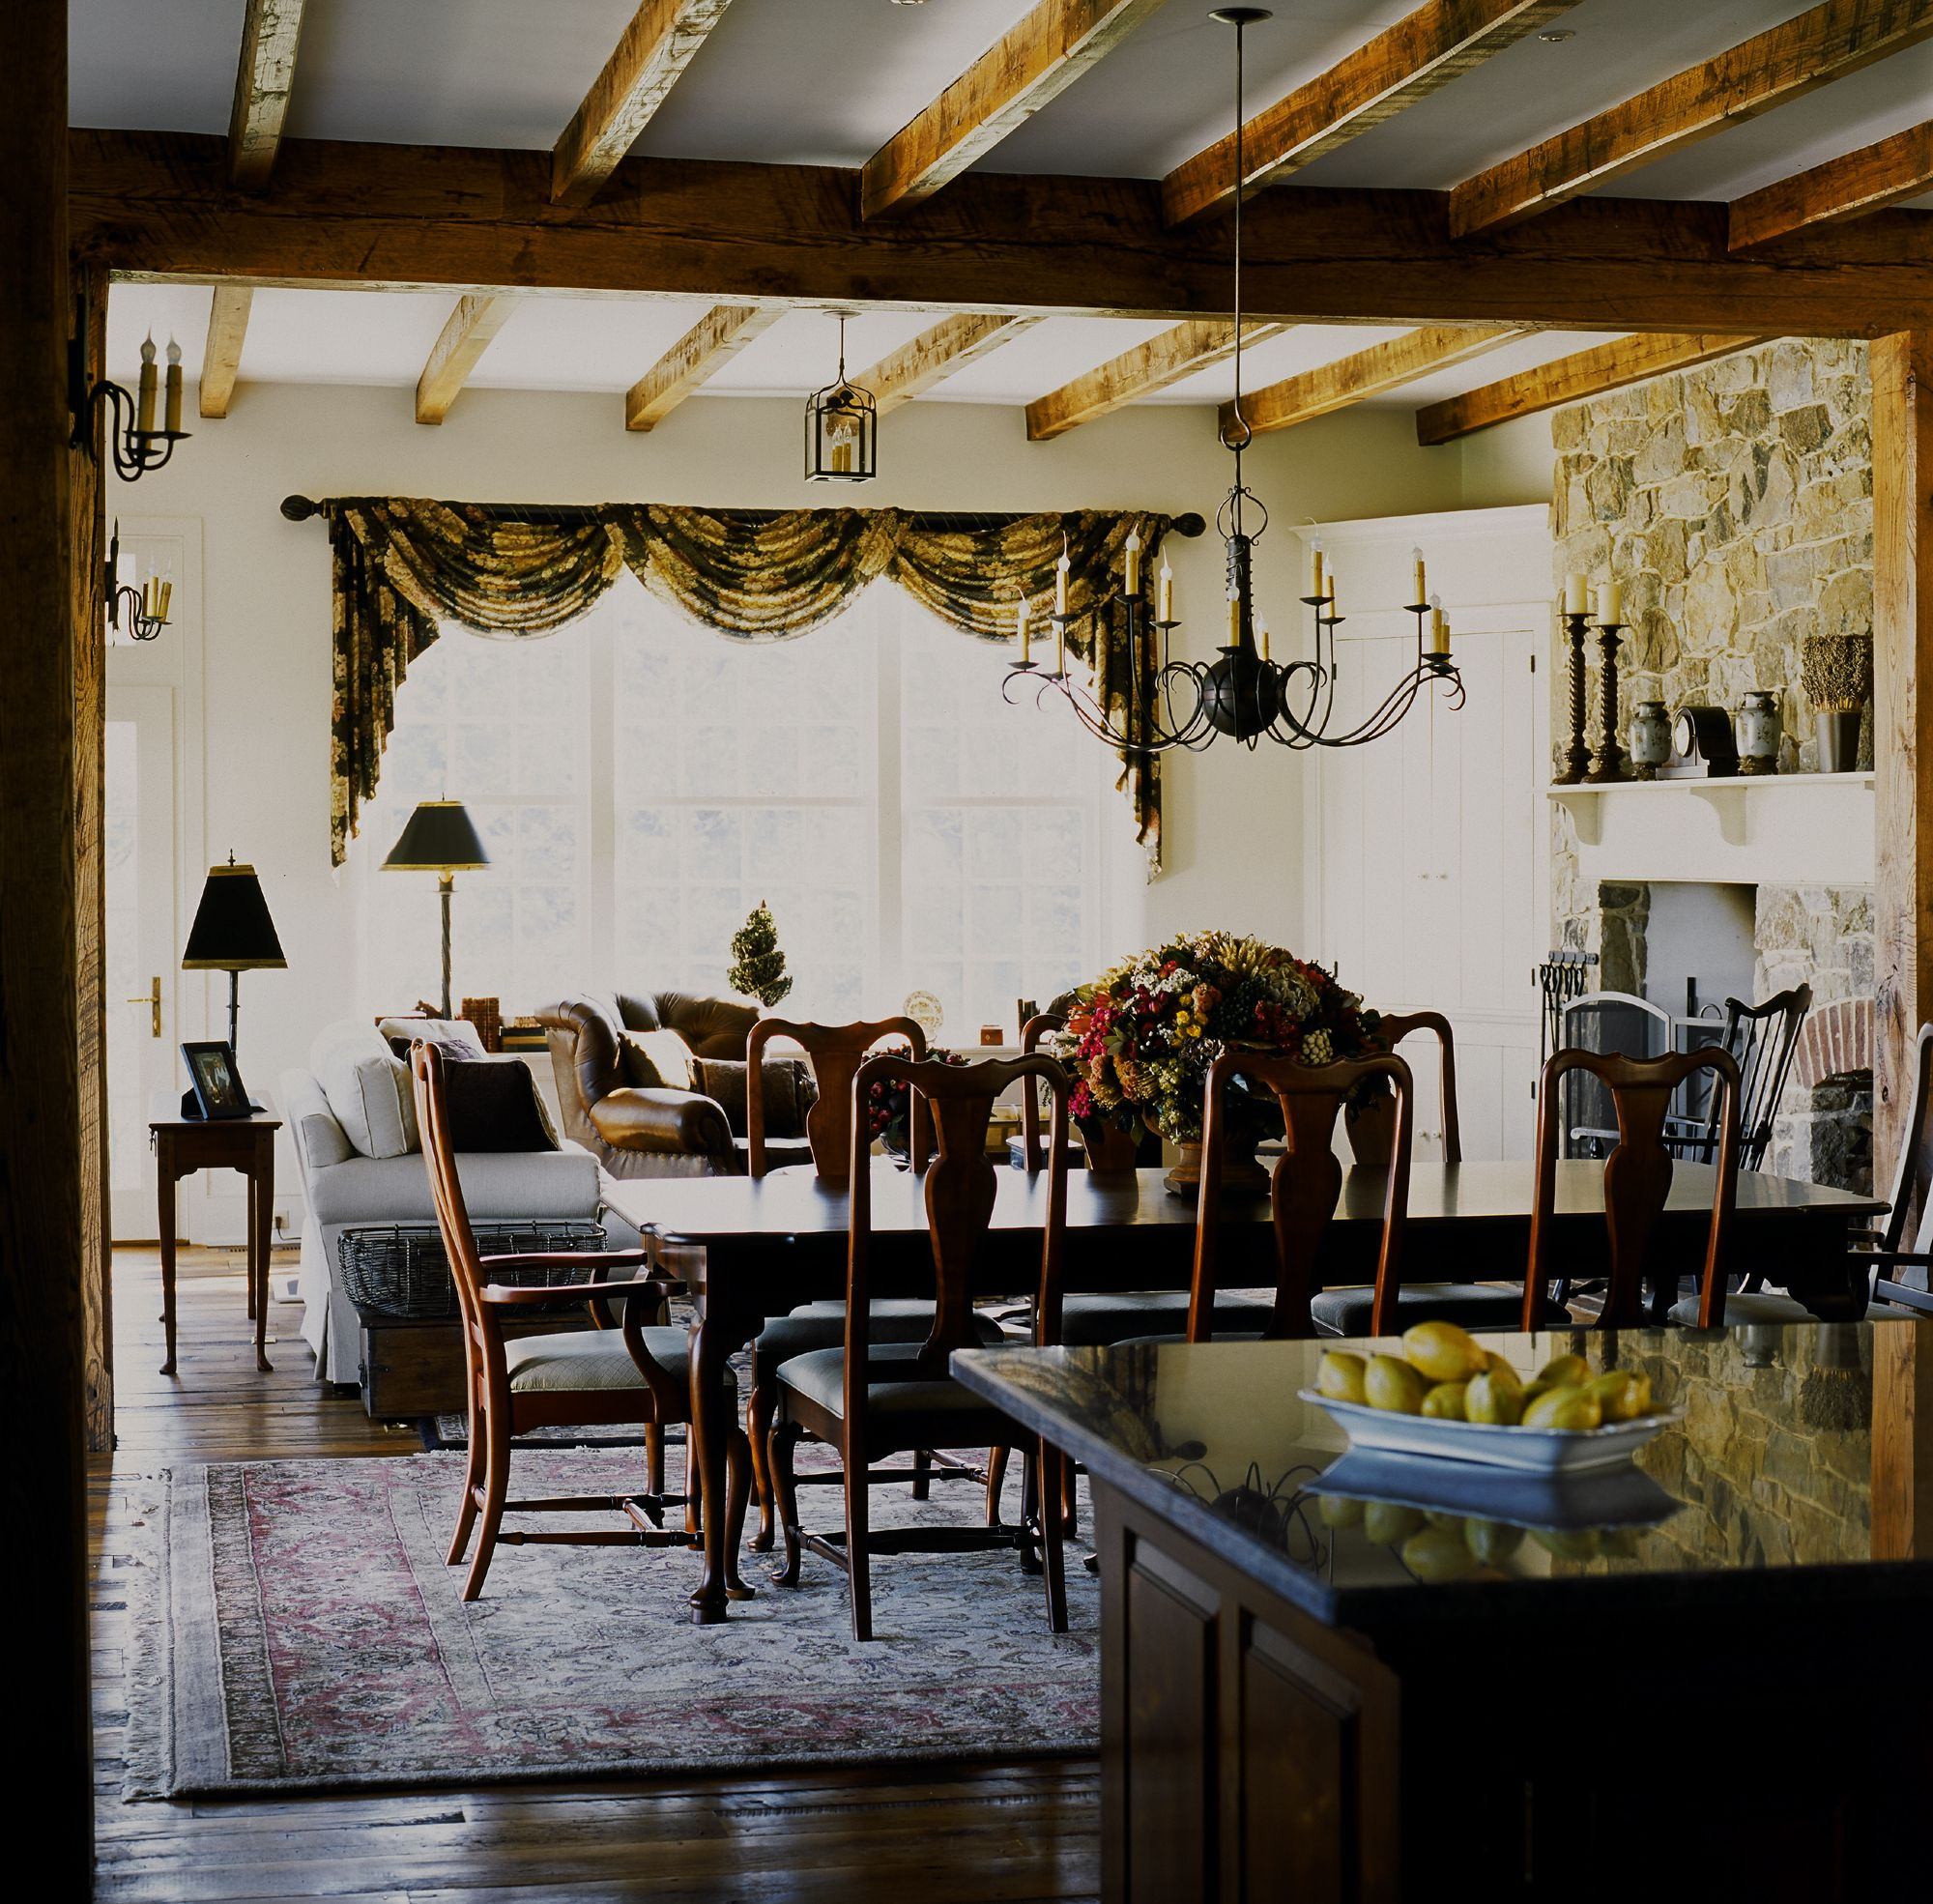 Tis dining area separates the kitchen from a family ...